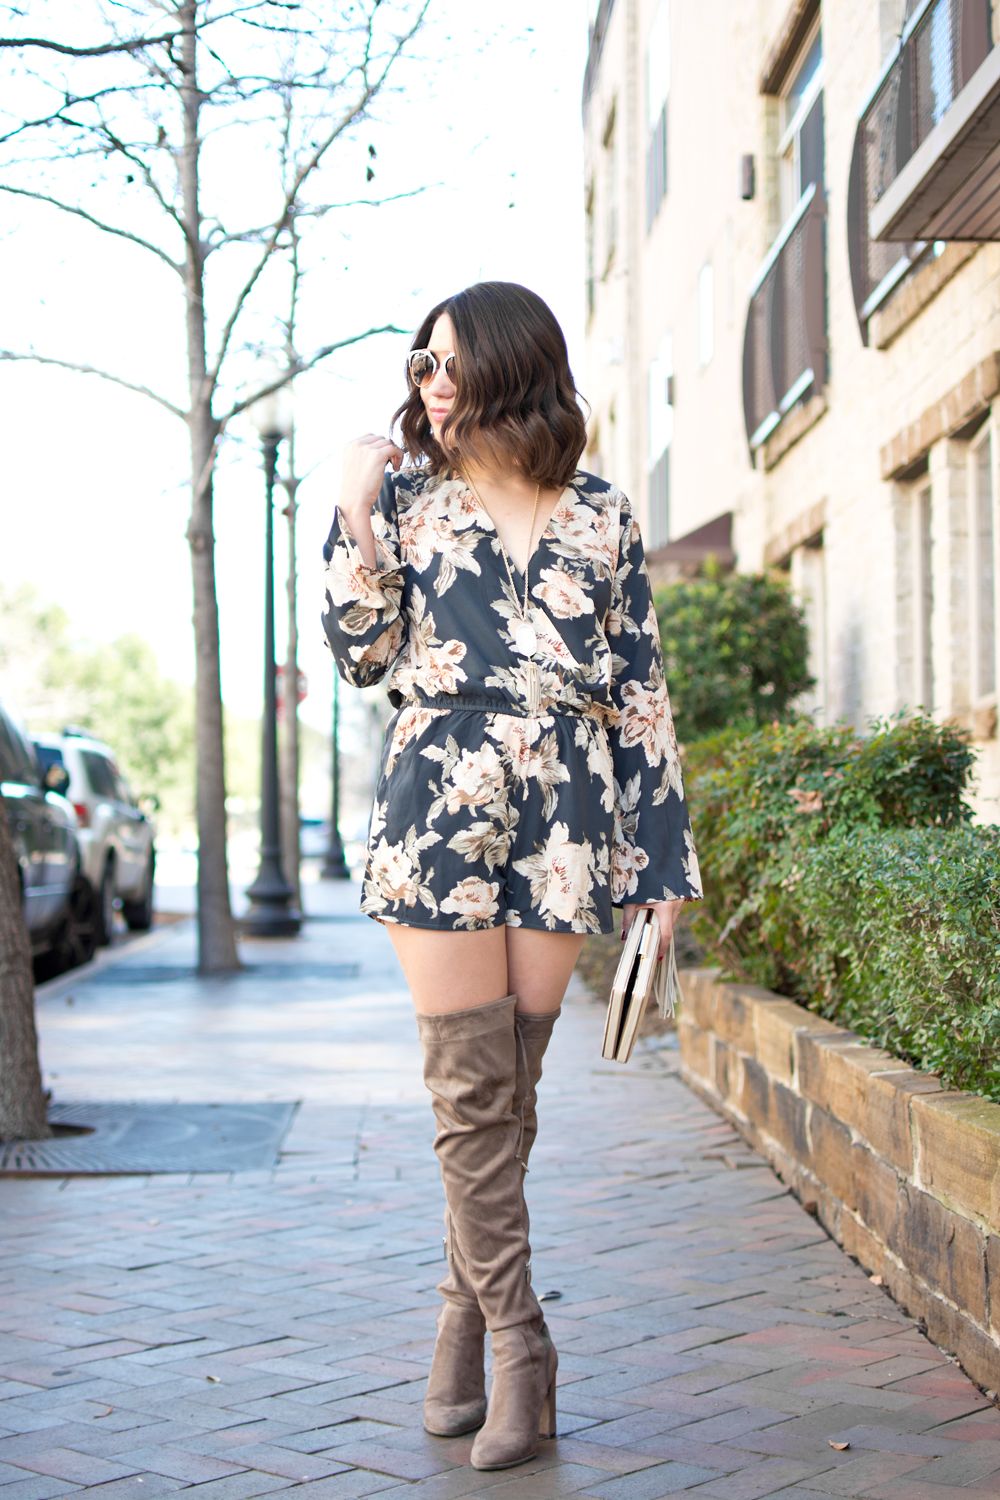 spring outfit, spring fashion, fashion blogger, spring outfit ideas, winter to spring transition pieces, floral romper, how to style a romper, how to style over the knee boots